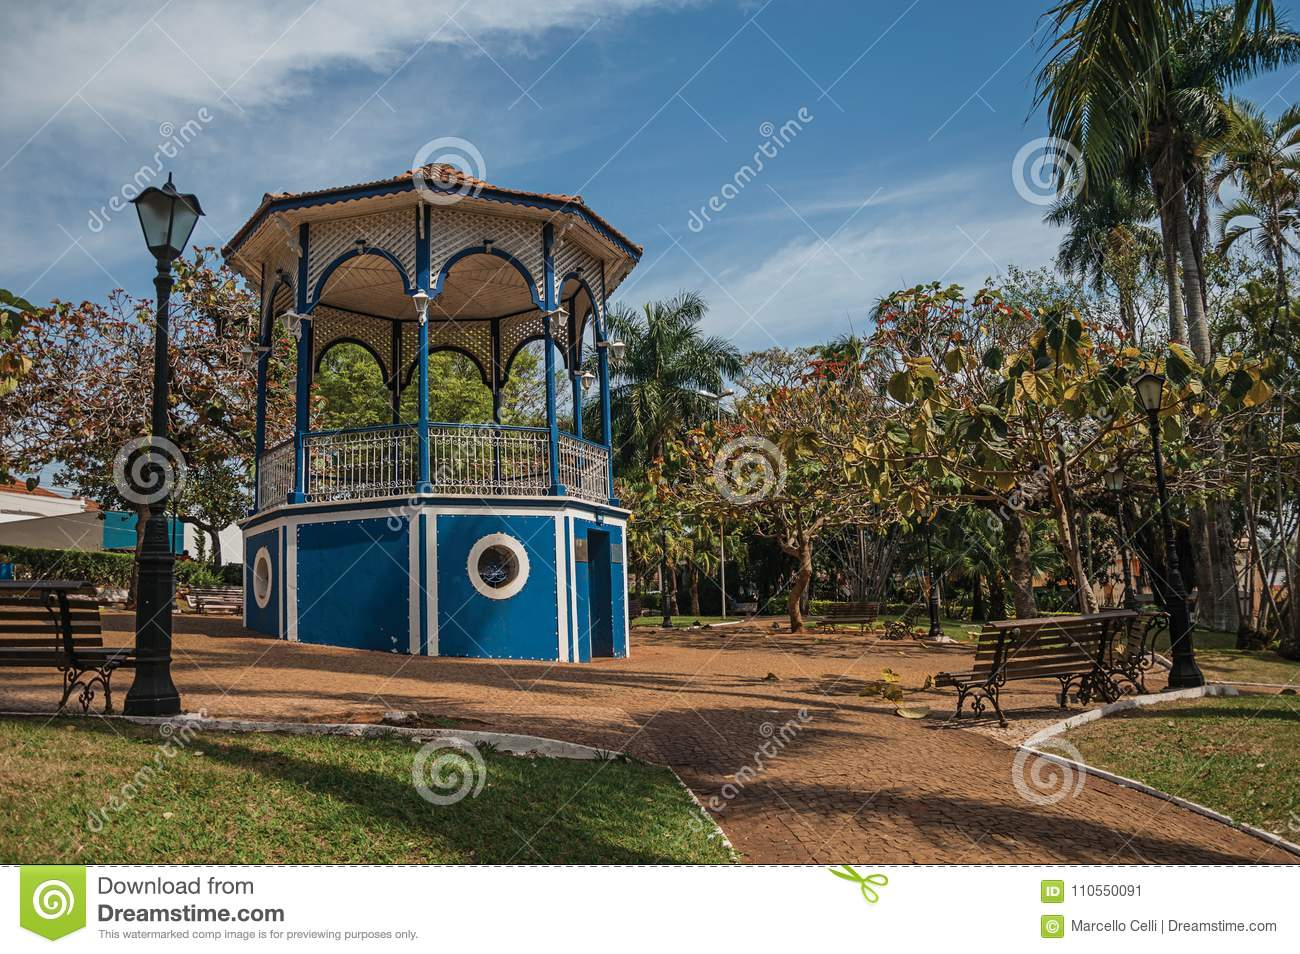 Old colorful gazebo and lighting pole in the middle of verdant garden full of trees, in a sunny day at São Manuel.